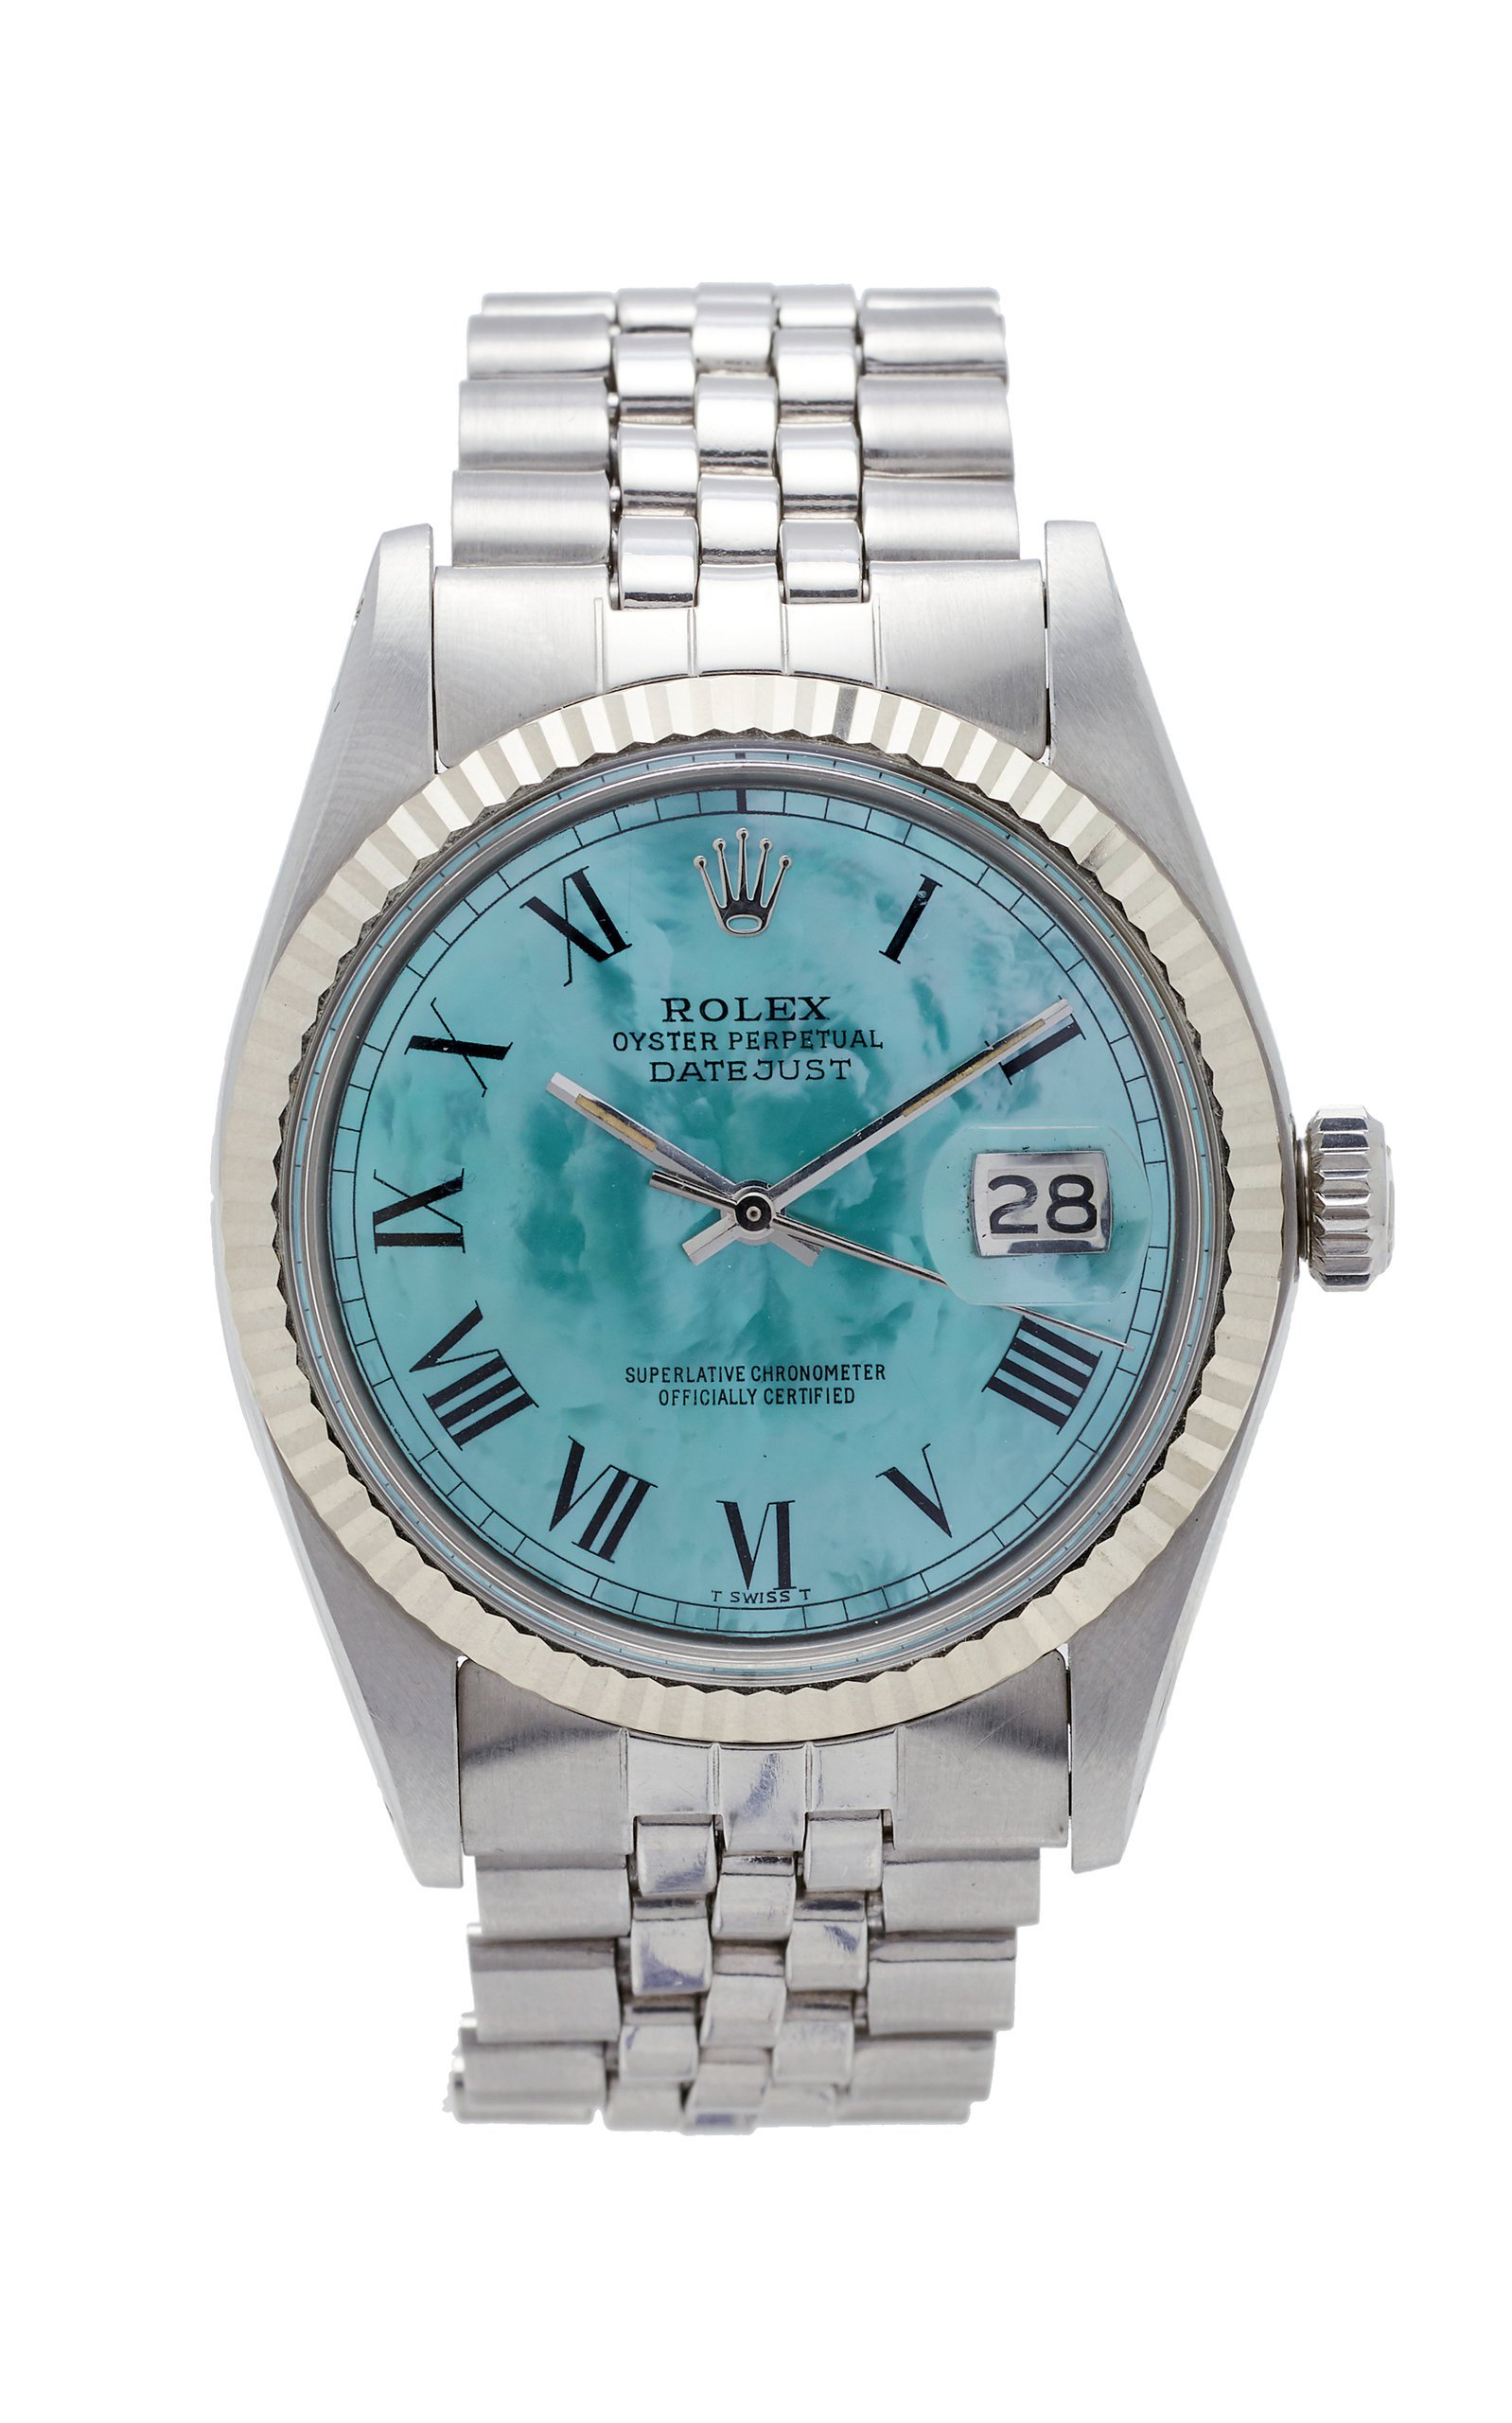 Vintage Watches Rolex Datejust 36mm Aqua Green Pearlized Roman Dial